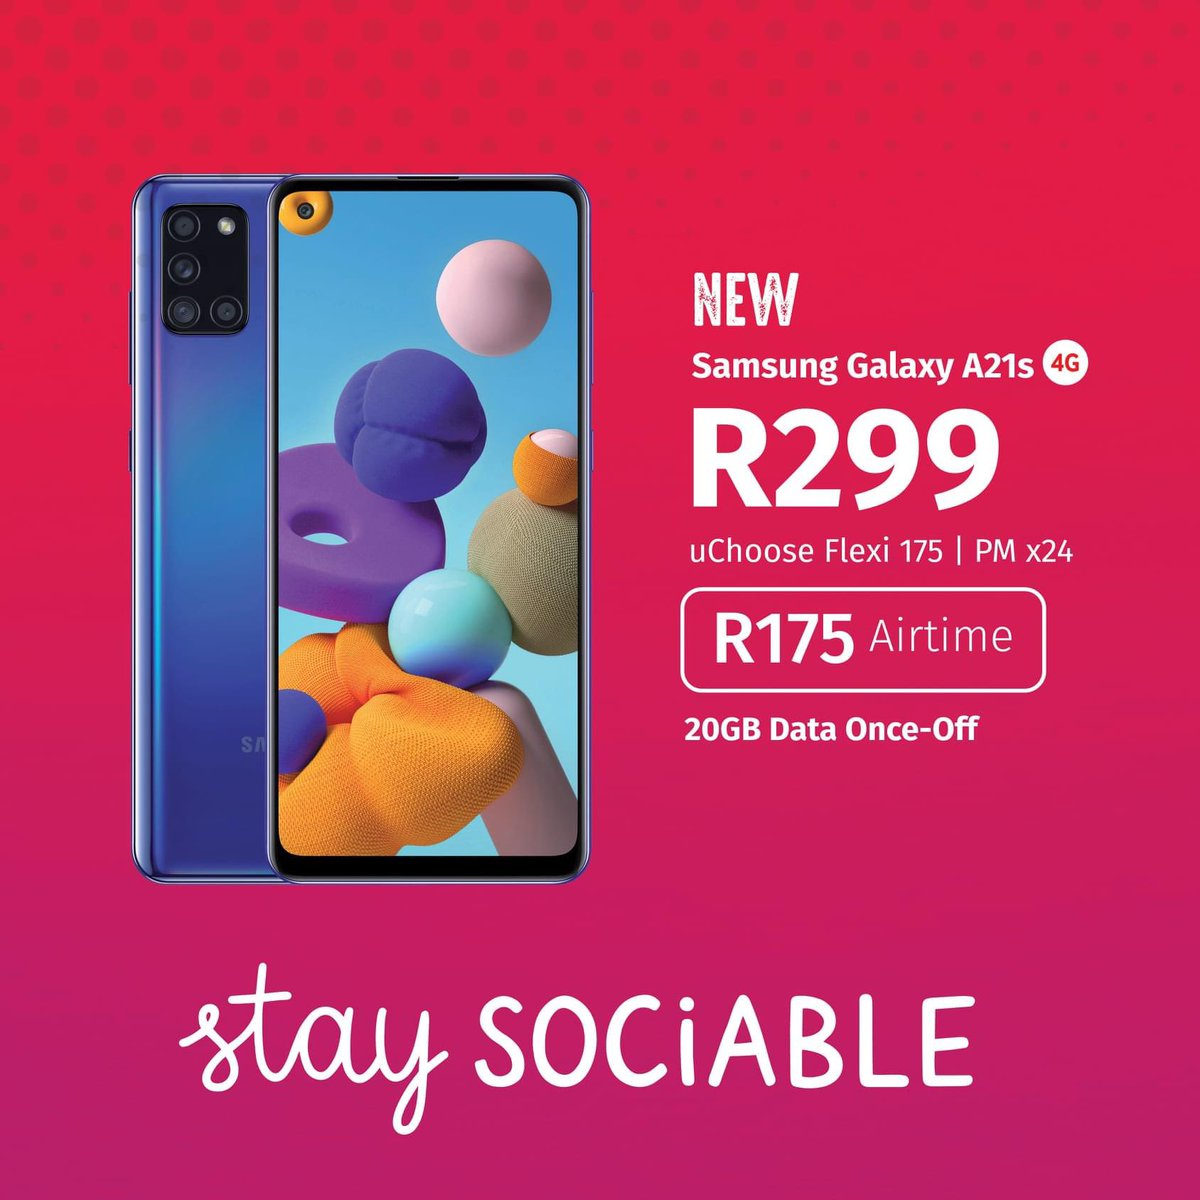 Vodacom 4u On Twitter Stay Sociable With The Samsung Galaxy A21s Today Save Big On Your Connection With Vodacom4u Here4u Connected Samsungmobilesa Https T Co Zuw3m1rlxs